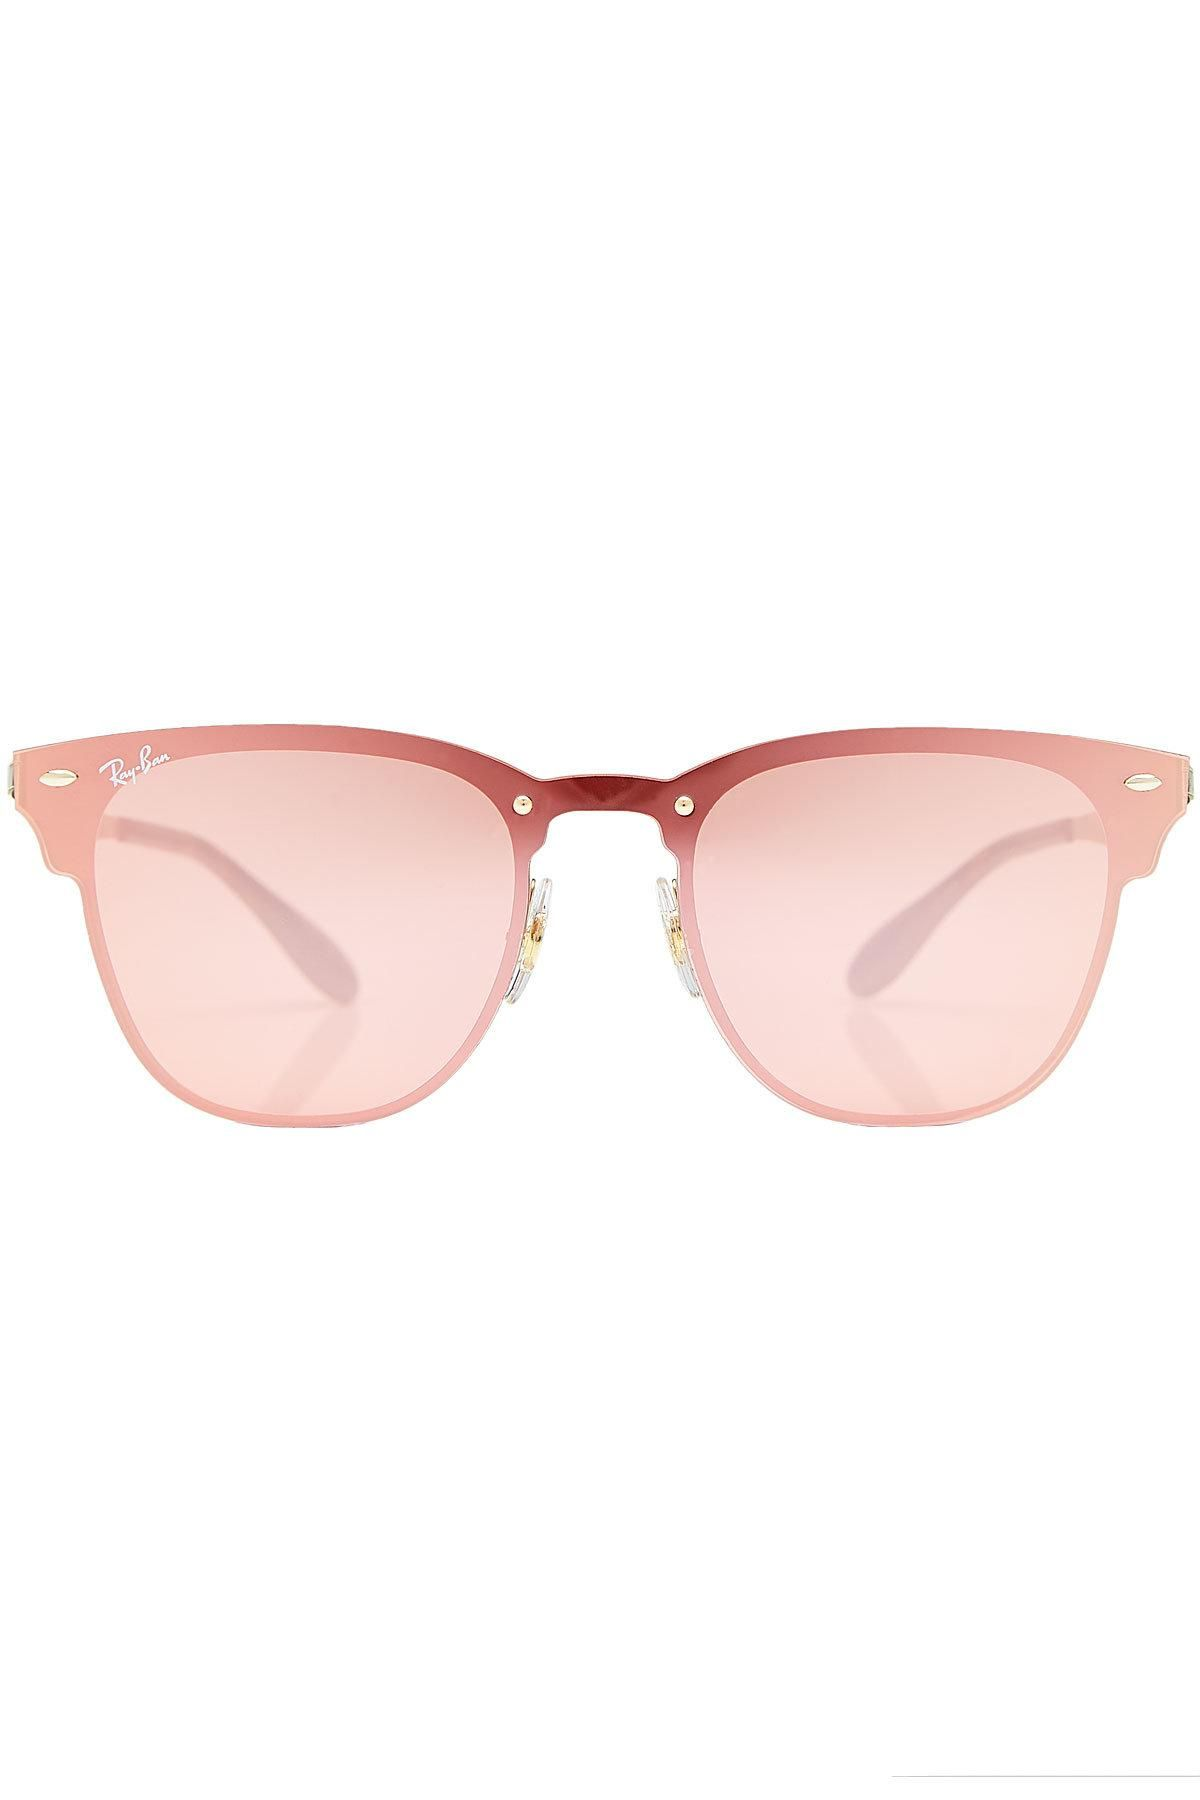 4d60de30e52d41 ... coupon for stylebop fr nl it ray ban ray ban rb3576n blaze clubmaster  mirrored sunglasses adorewe